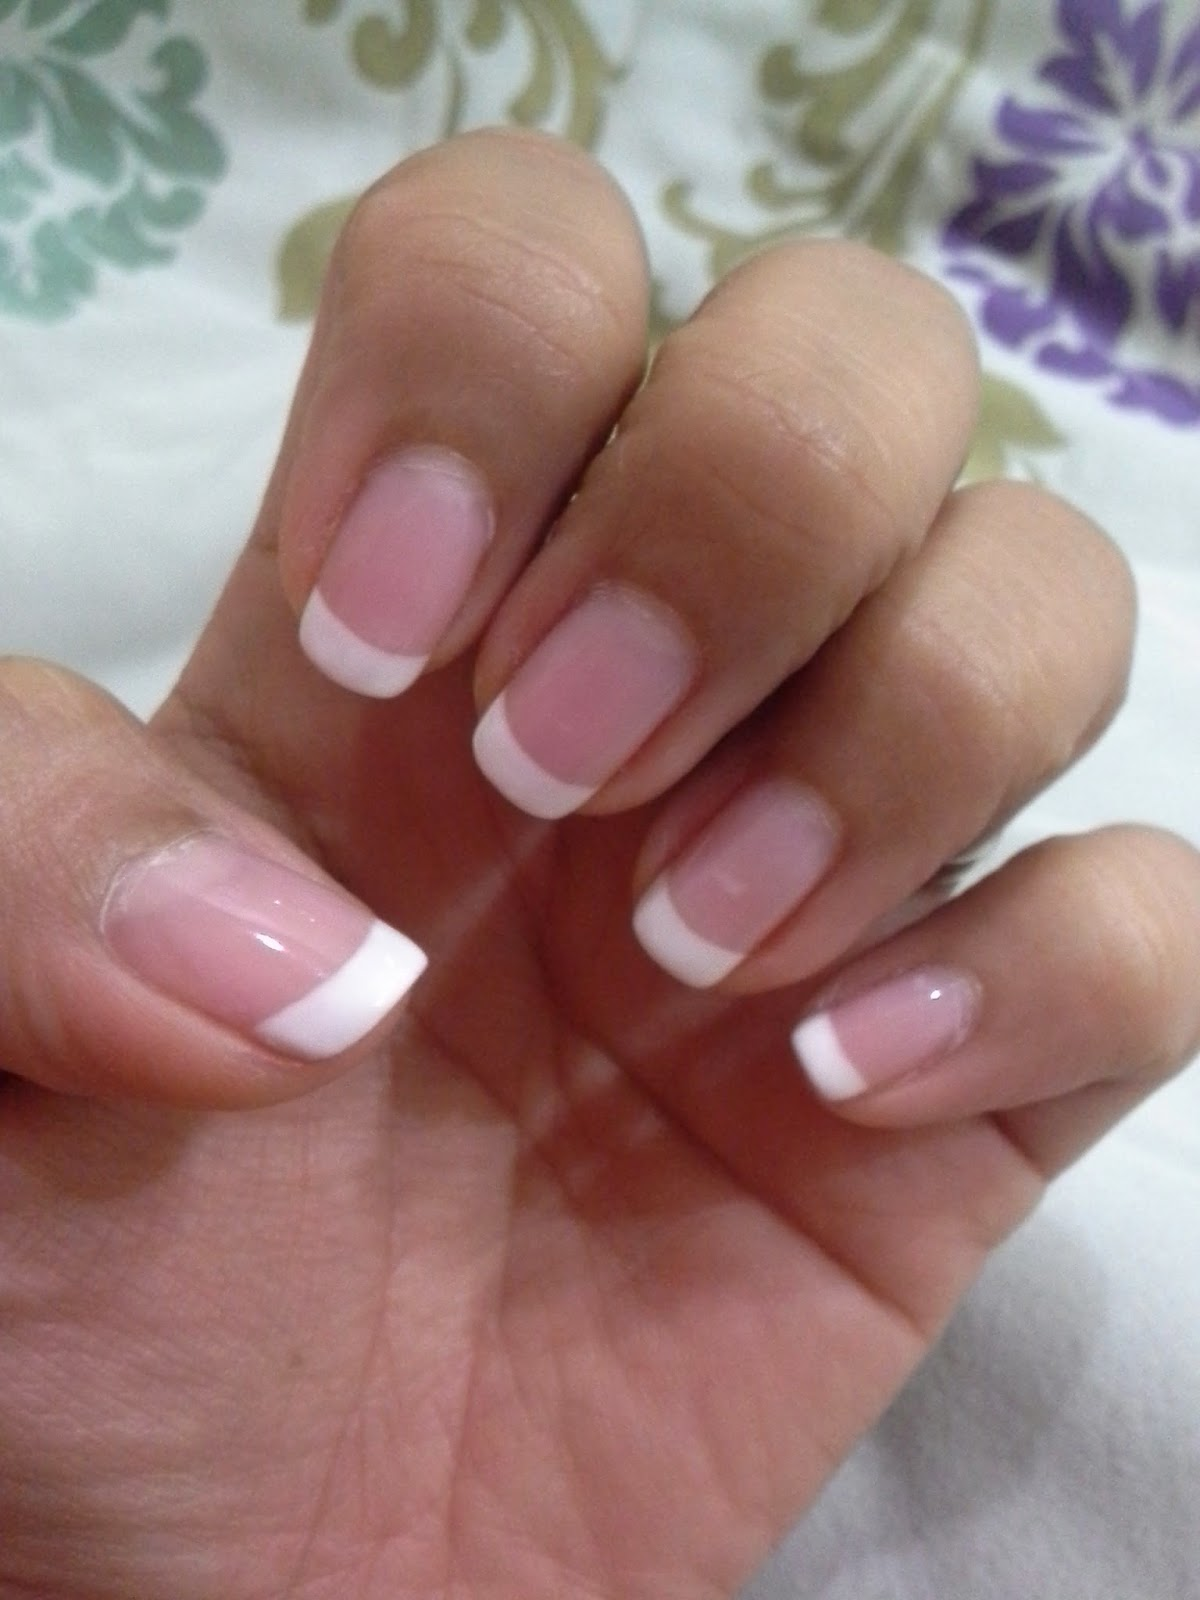 Gel nails for men - New Expression Nails